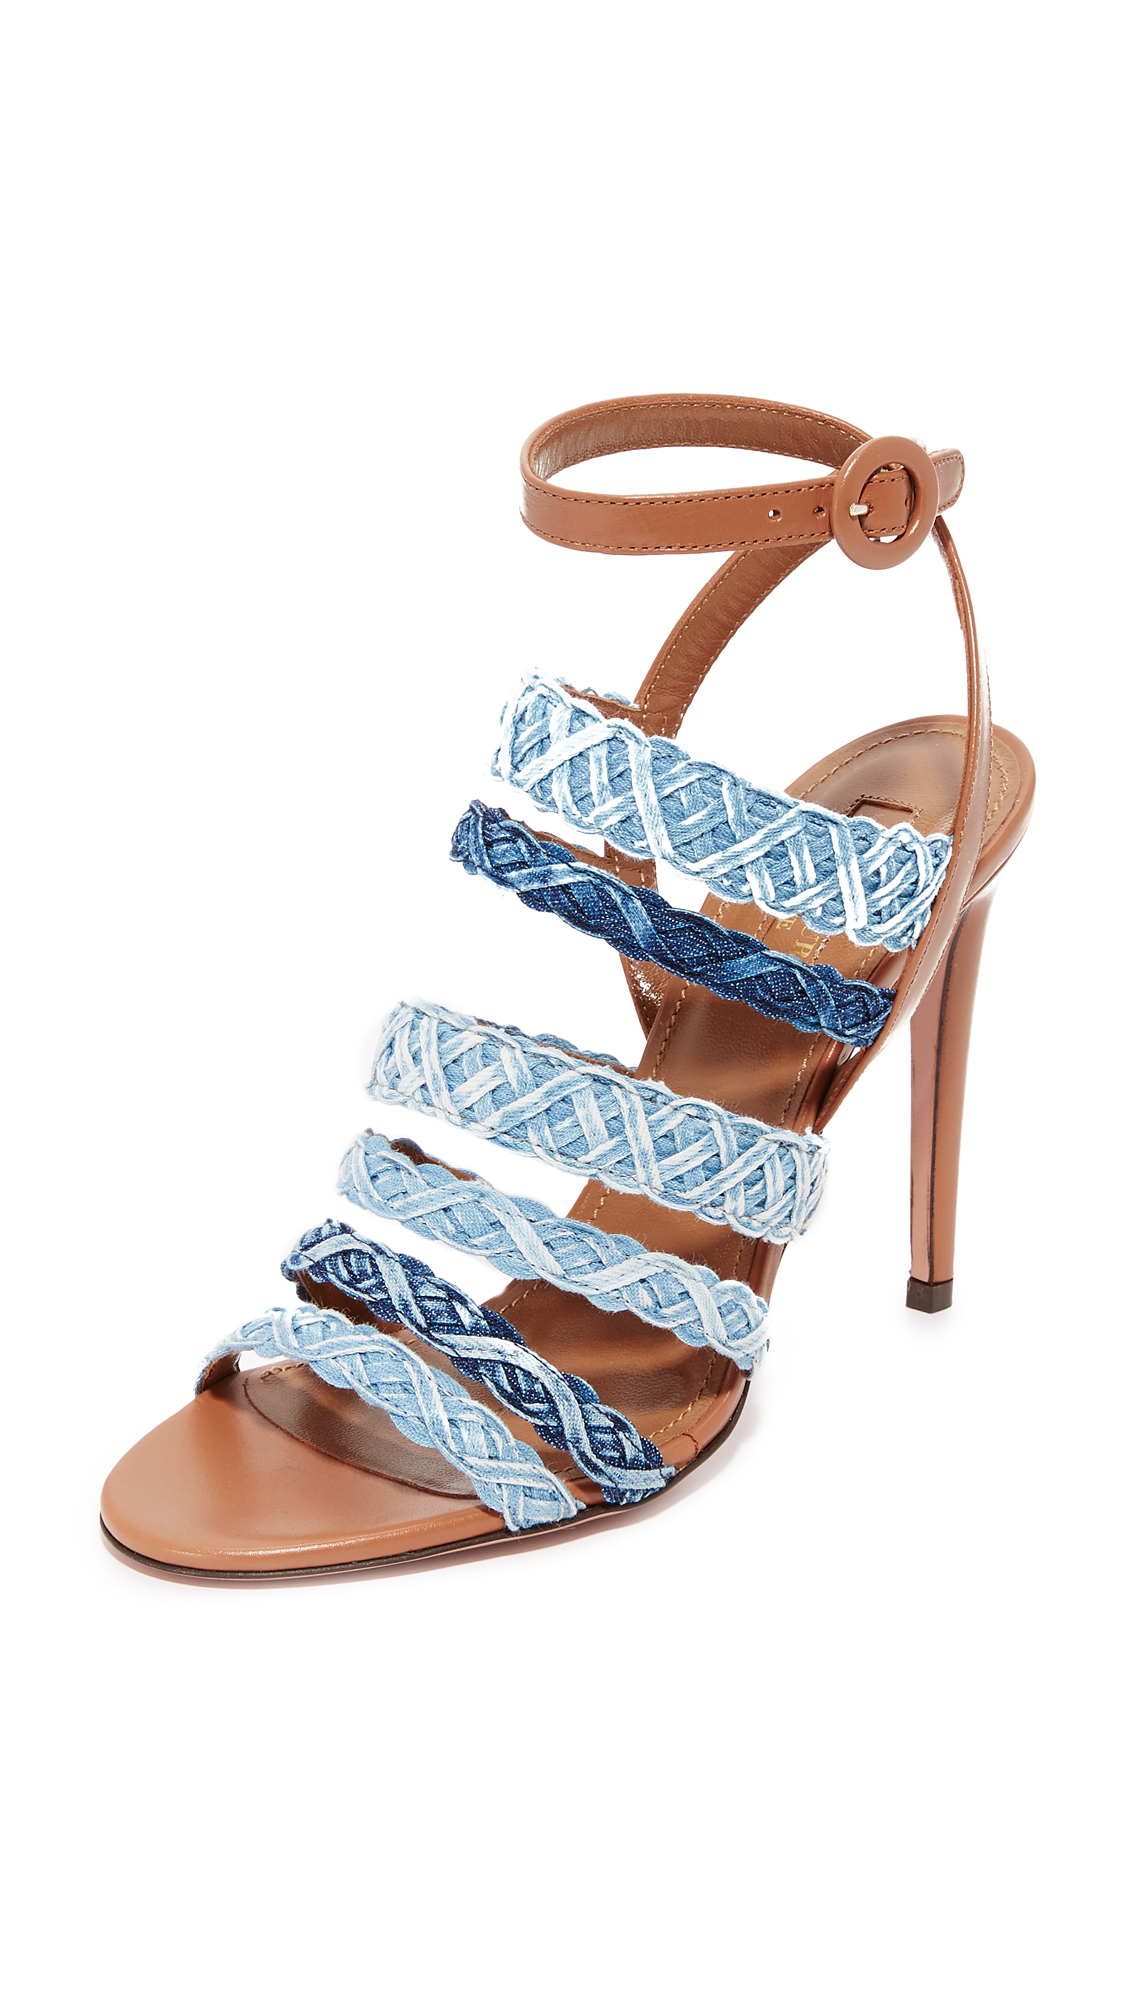 Aquazzura Tyra Sandals - Whiskey/Jean